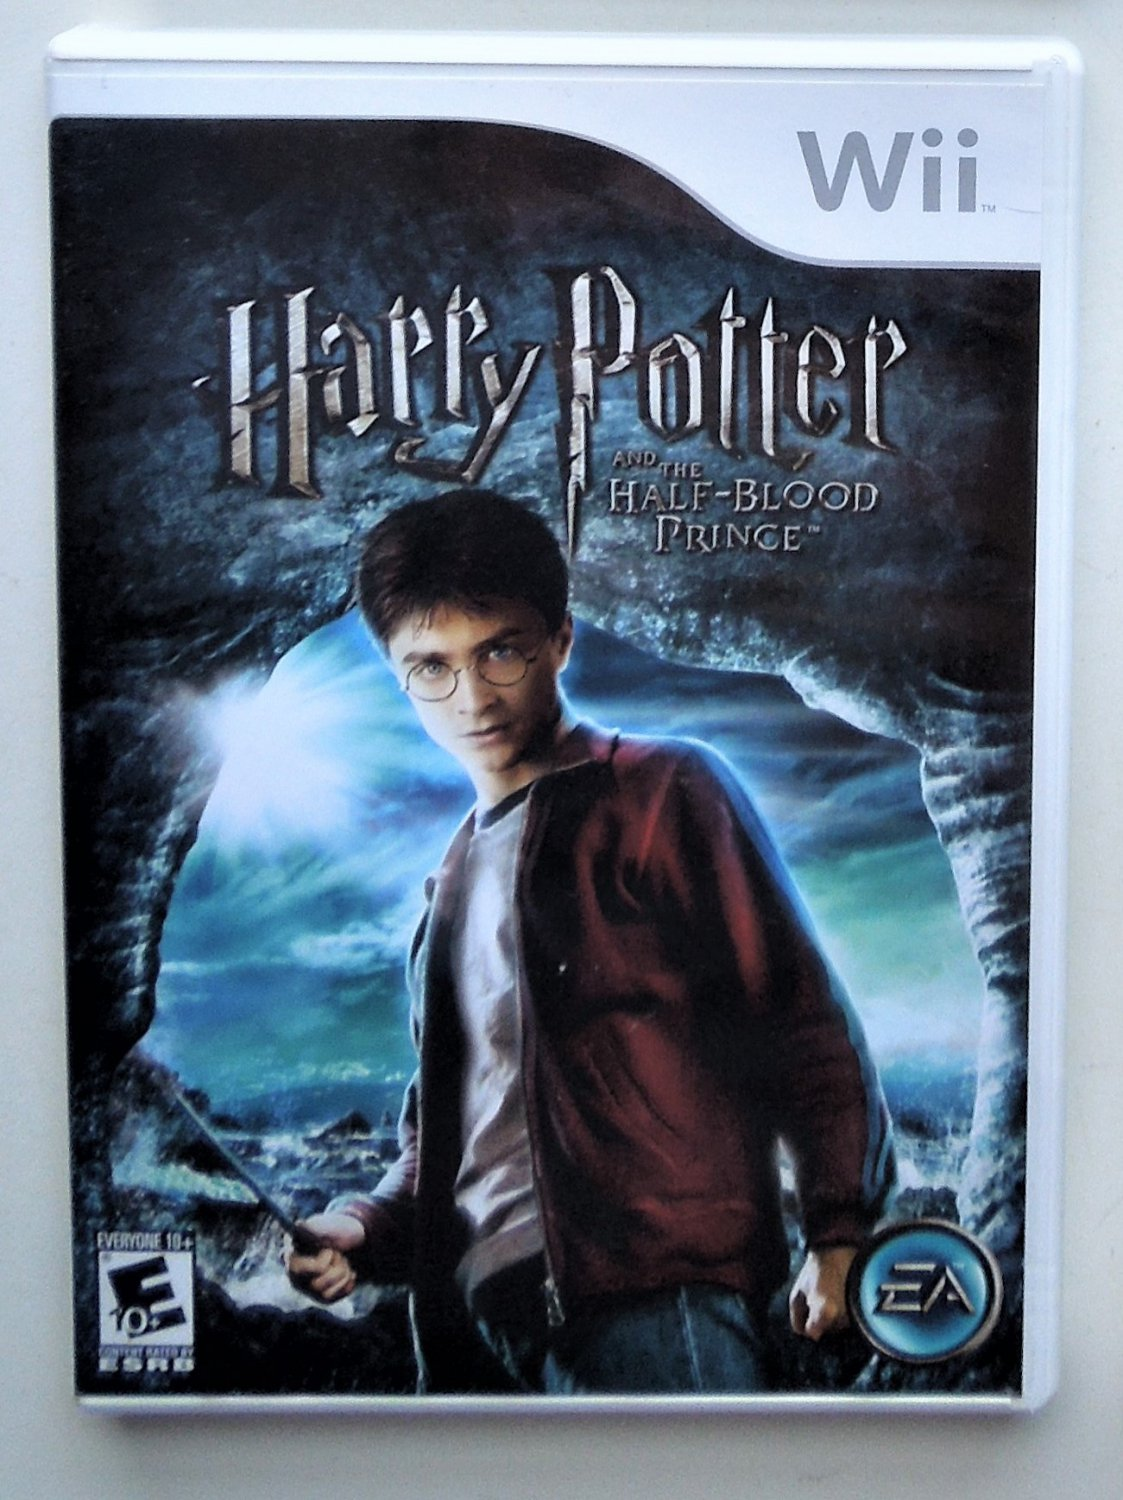 2007 EA Games Harry Potter Half-Blood Prince For Wii Game Systems